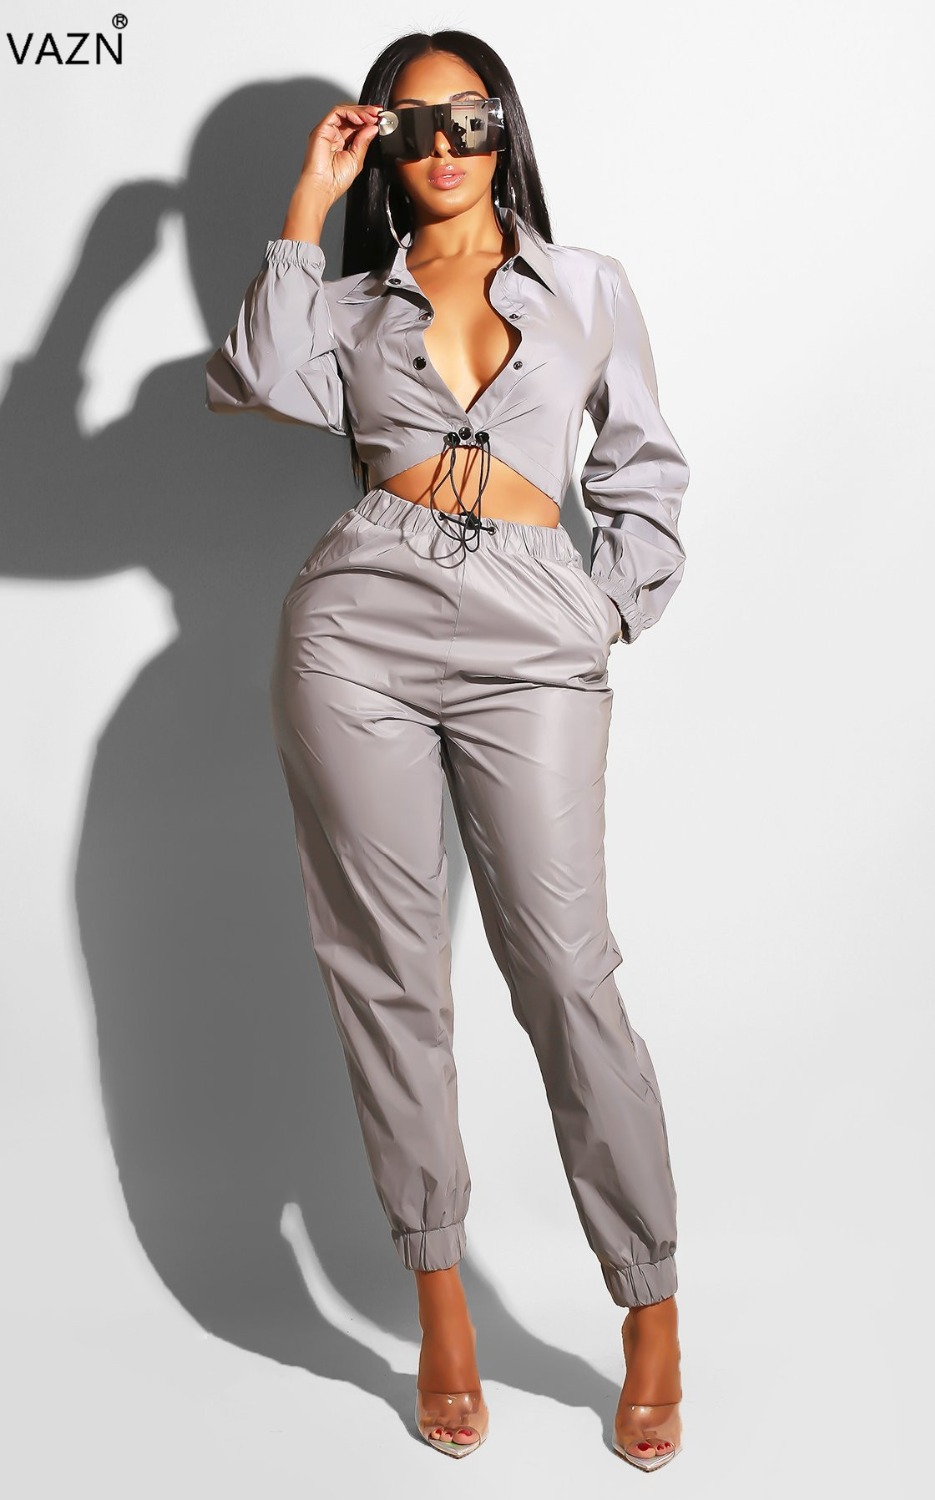 593f82e5f41 VAZN 2018 autumn hot sexy solid 2-pieces jumpsuits ladies button v-neck full